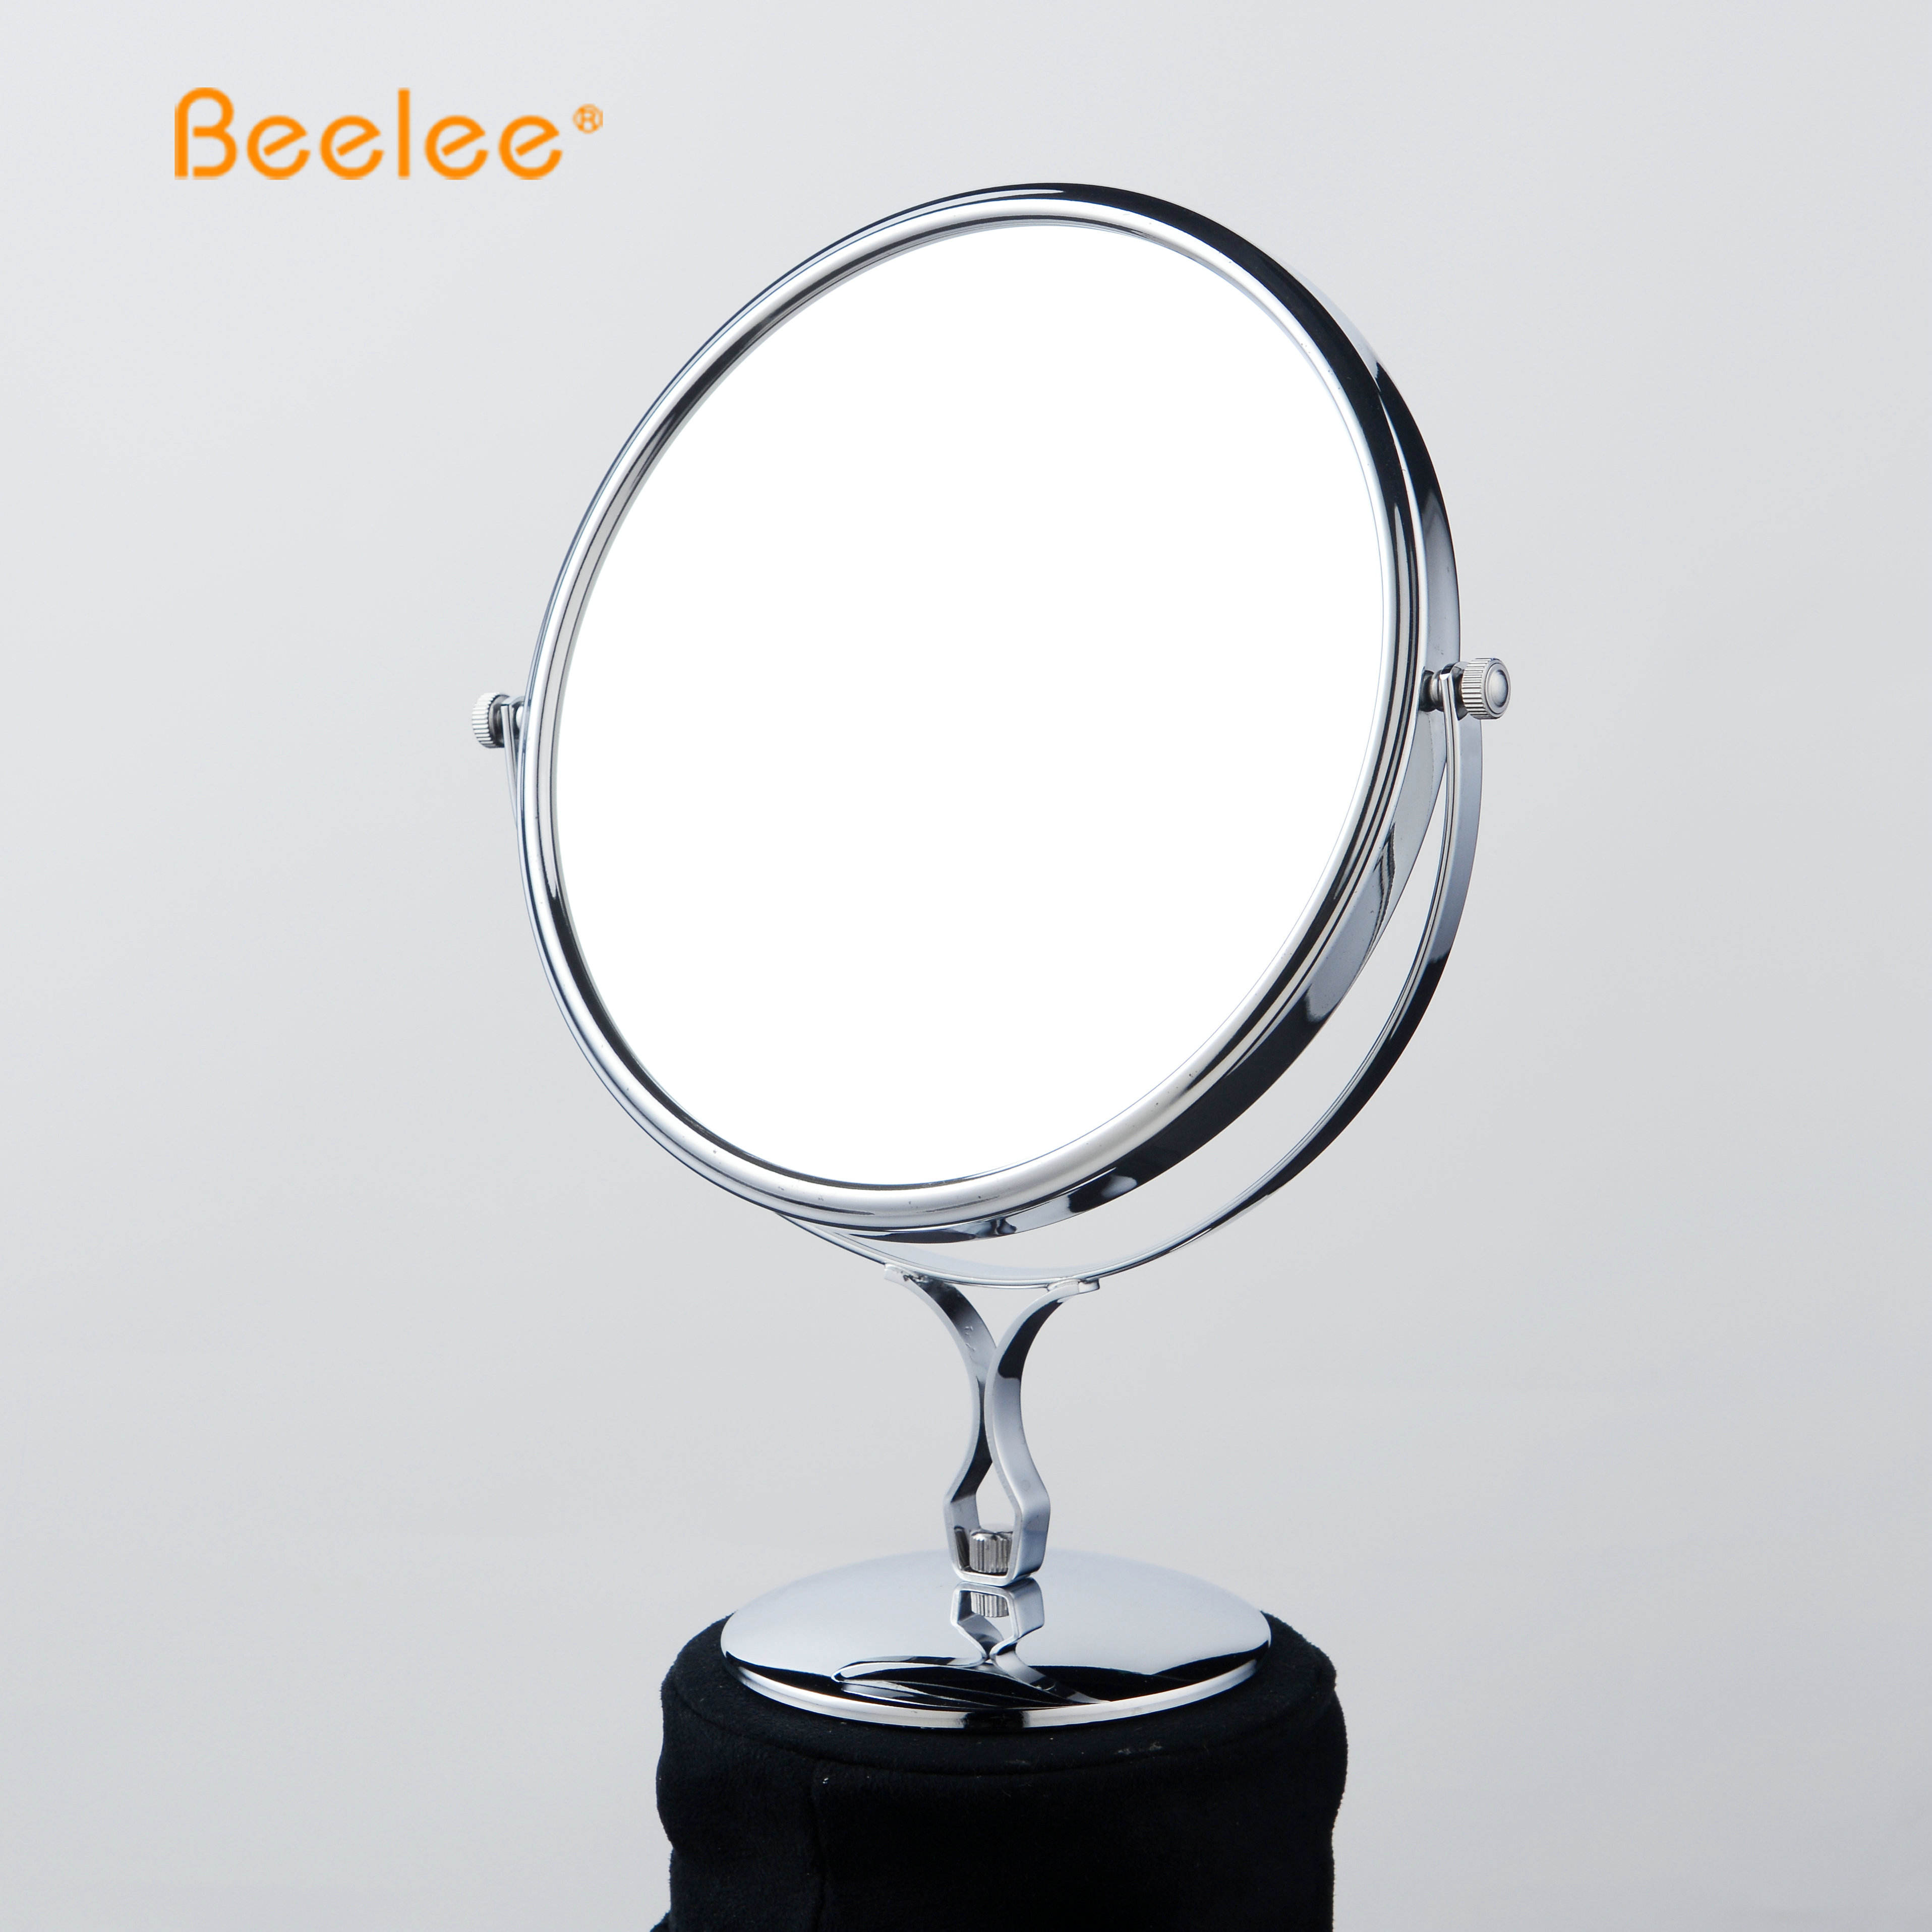 Beelee Round Brass SS Pedestal Desk Mount Smart Makeup Mirror